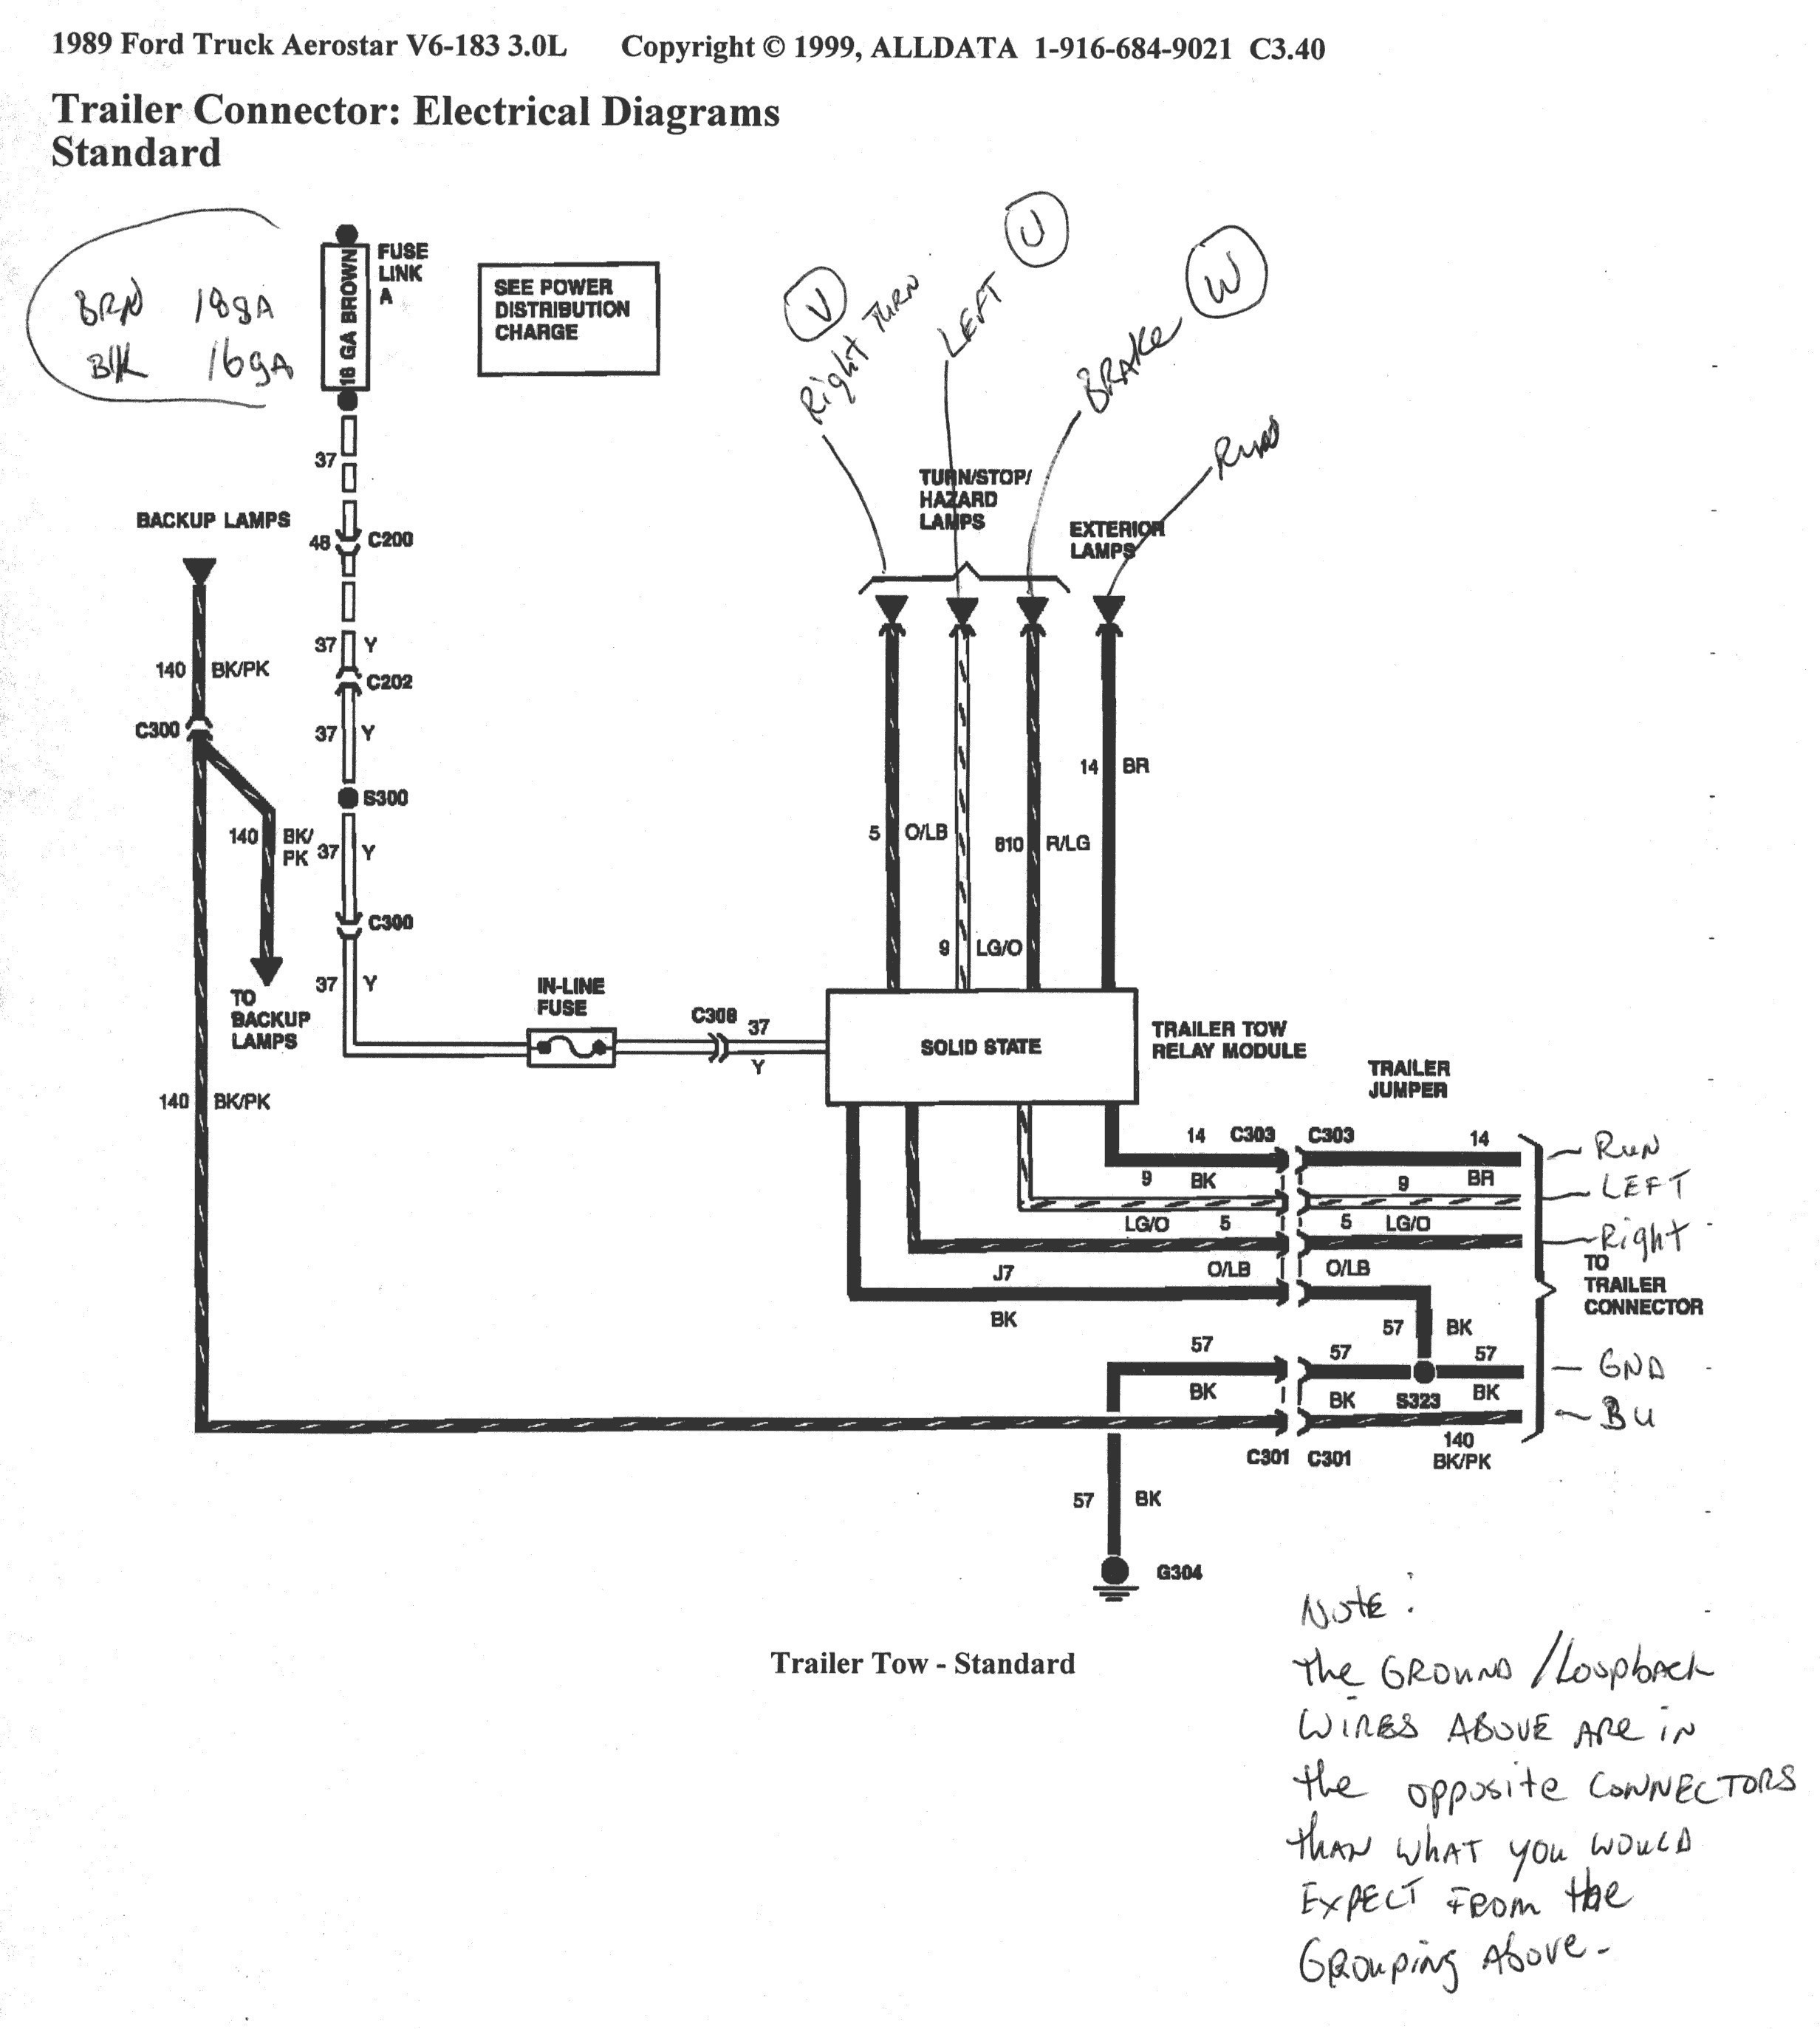 1987 Ford F350 Wiring Diagram from mainetreasurechest.com